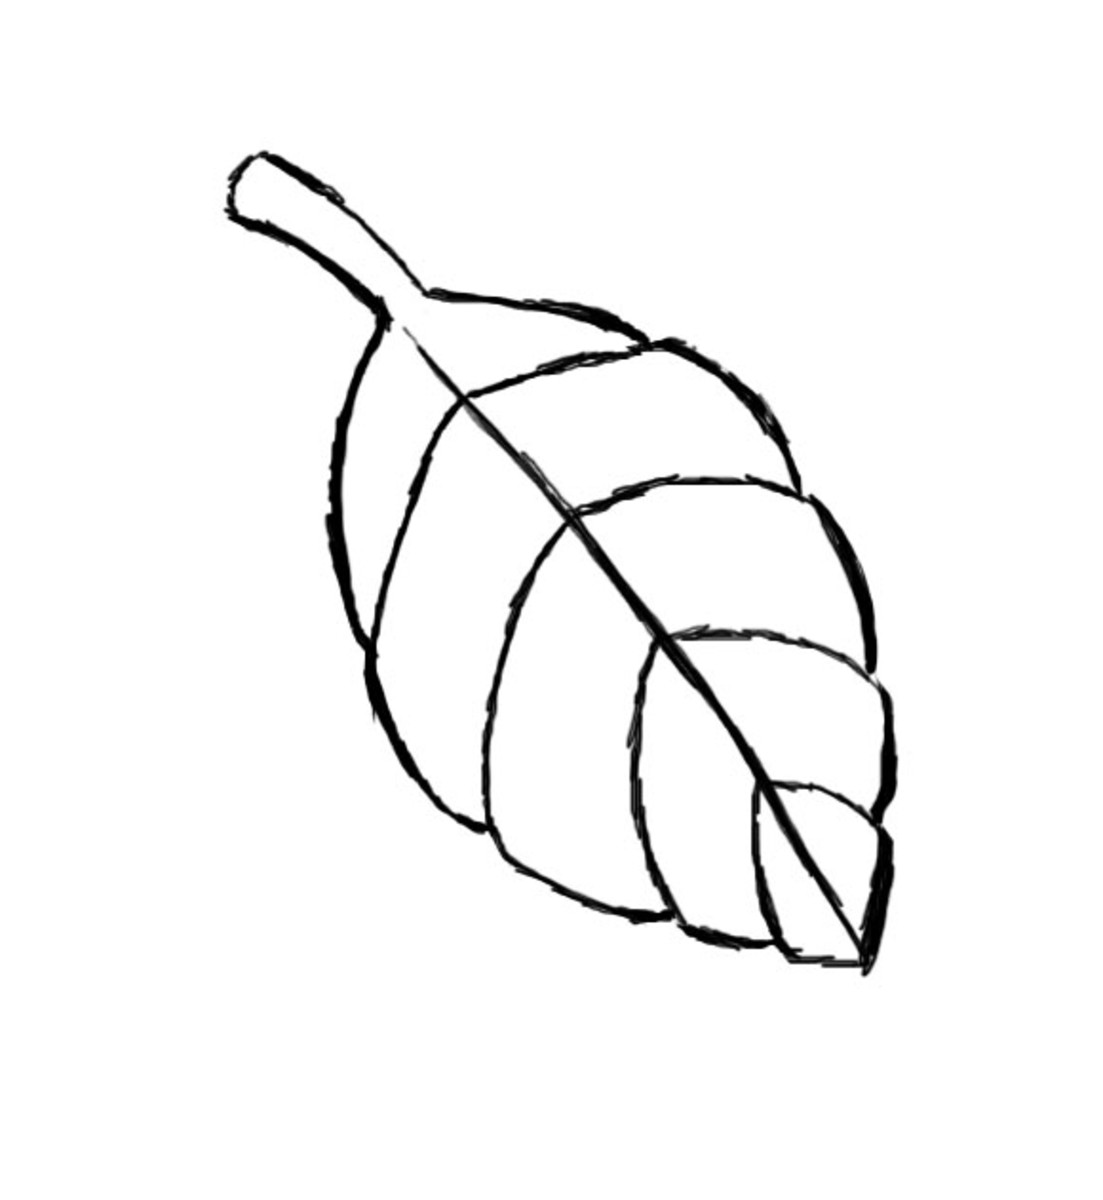 how to draw a mull leaf